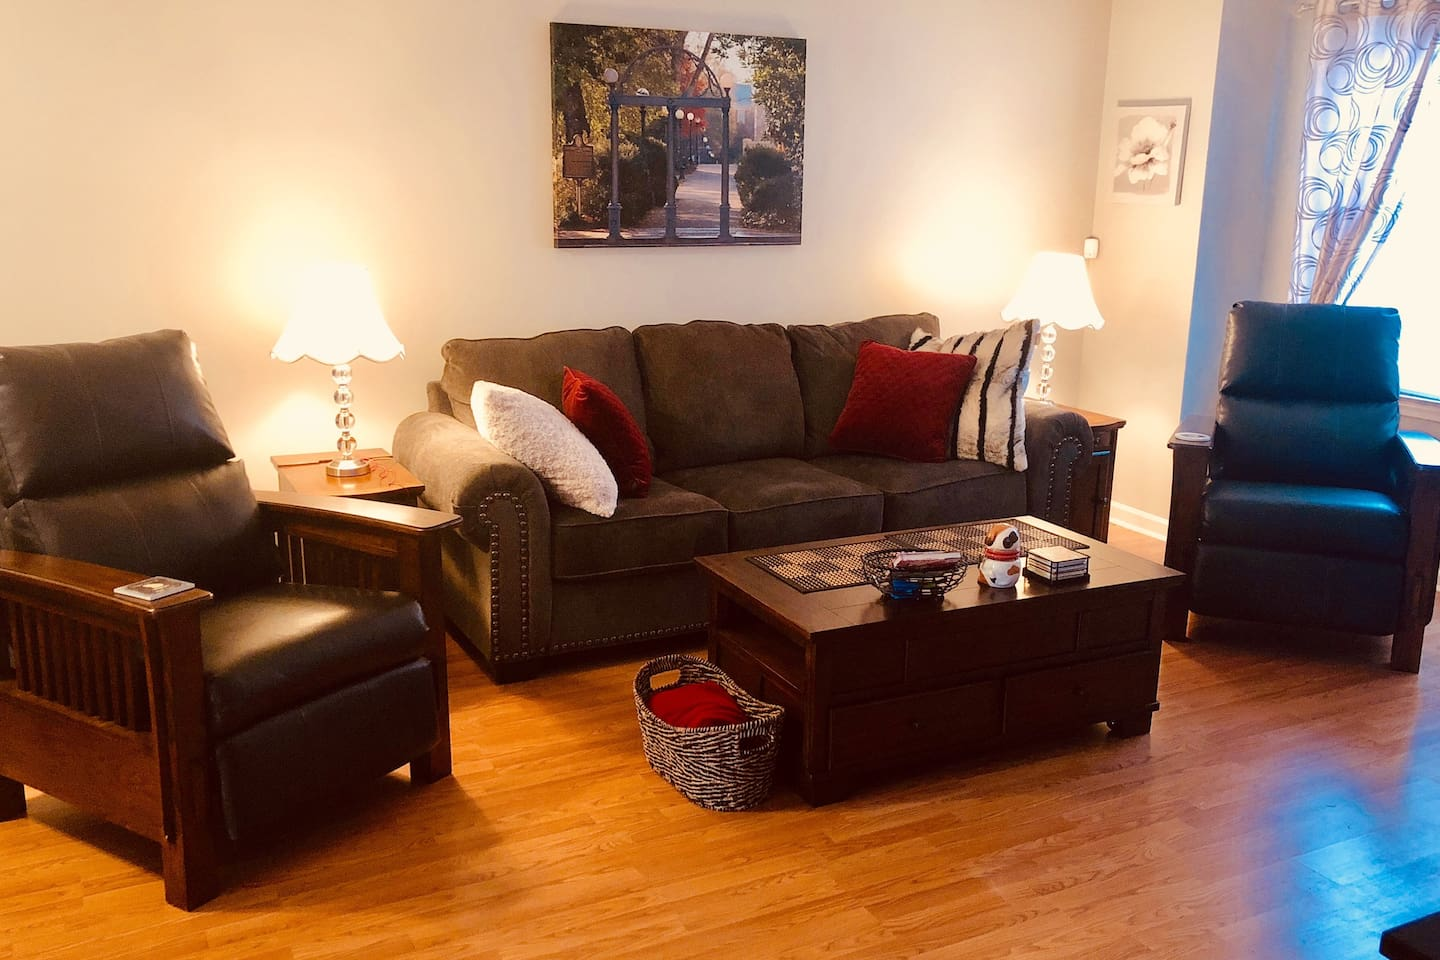 Living Room Area - Warm, welcoming and functional!  (Chargers and outlets in both end tables, recliners and cozy pillows, coffee table top comes up into table for dining in front of the TV.)  Sofa opens to a Queen size bed.